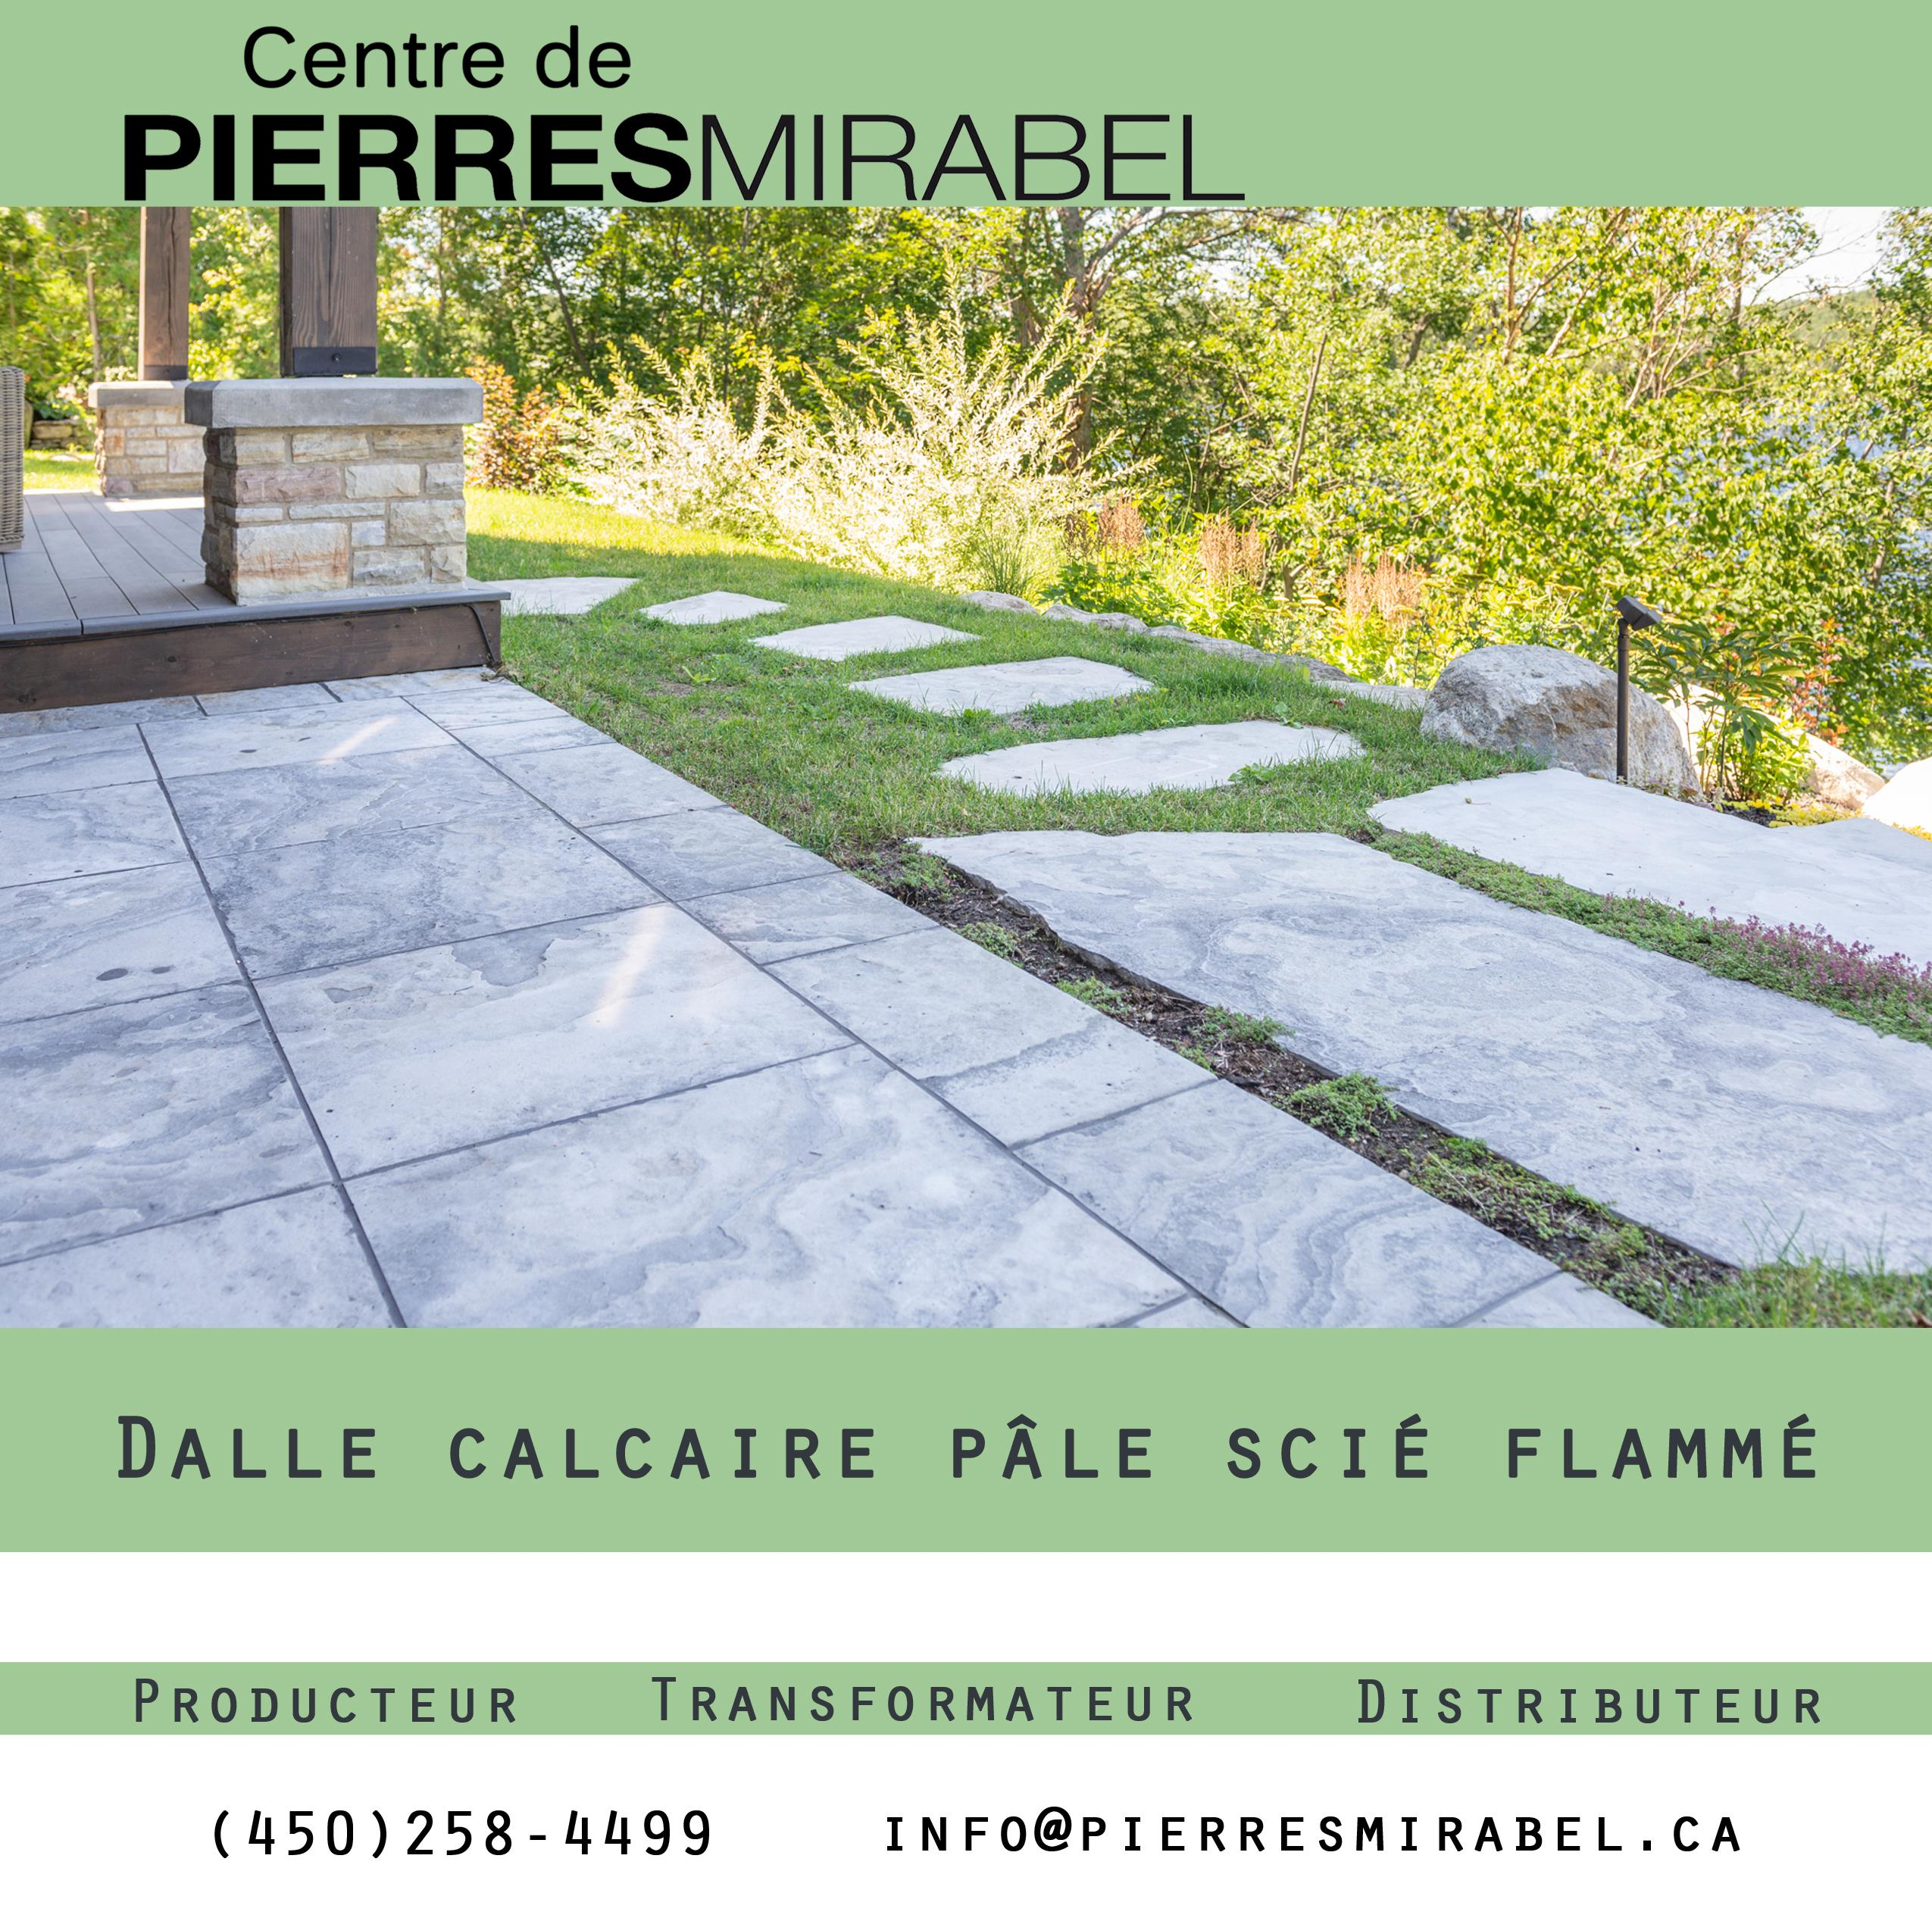 calcaire-pale-scie-flamme-bf.jpg